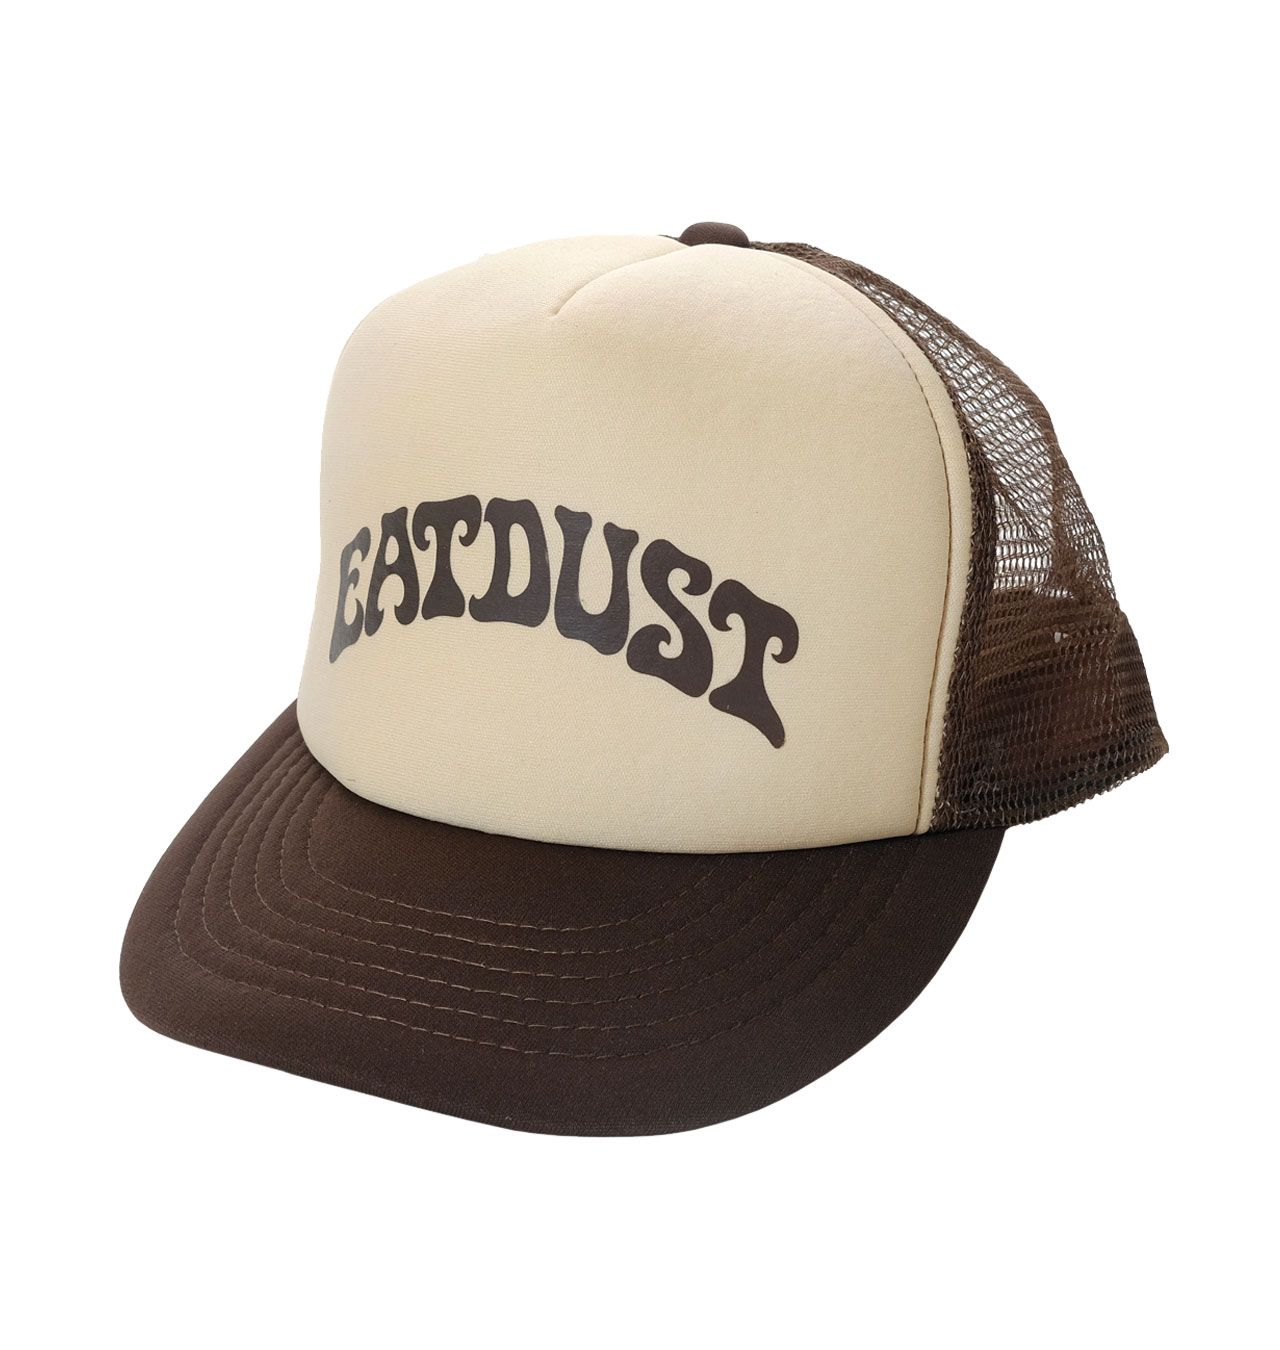 Eat Dust - Lava Logo Trucker Cap - Brown/Beige